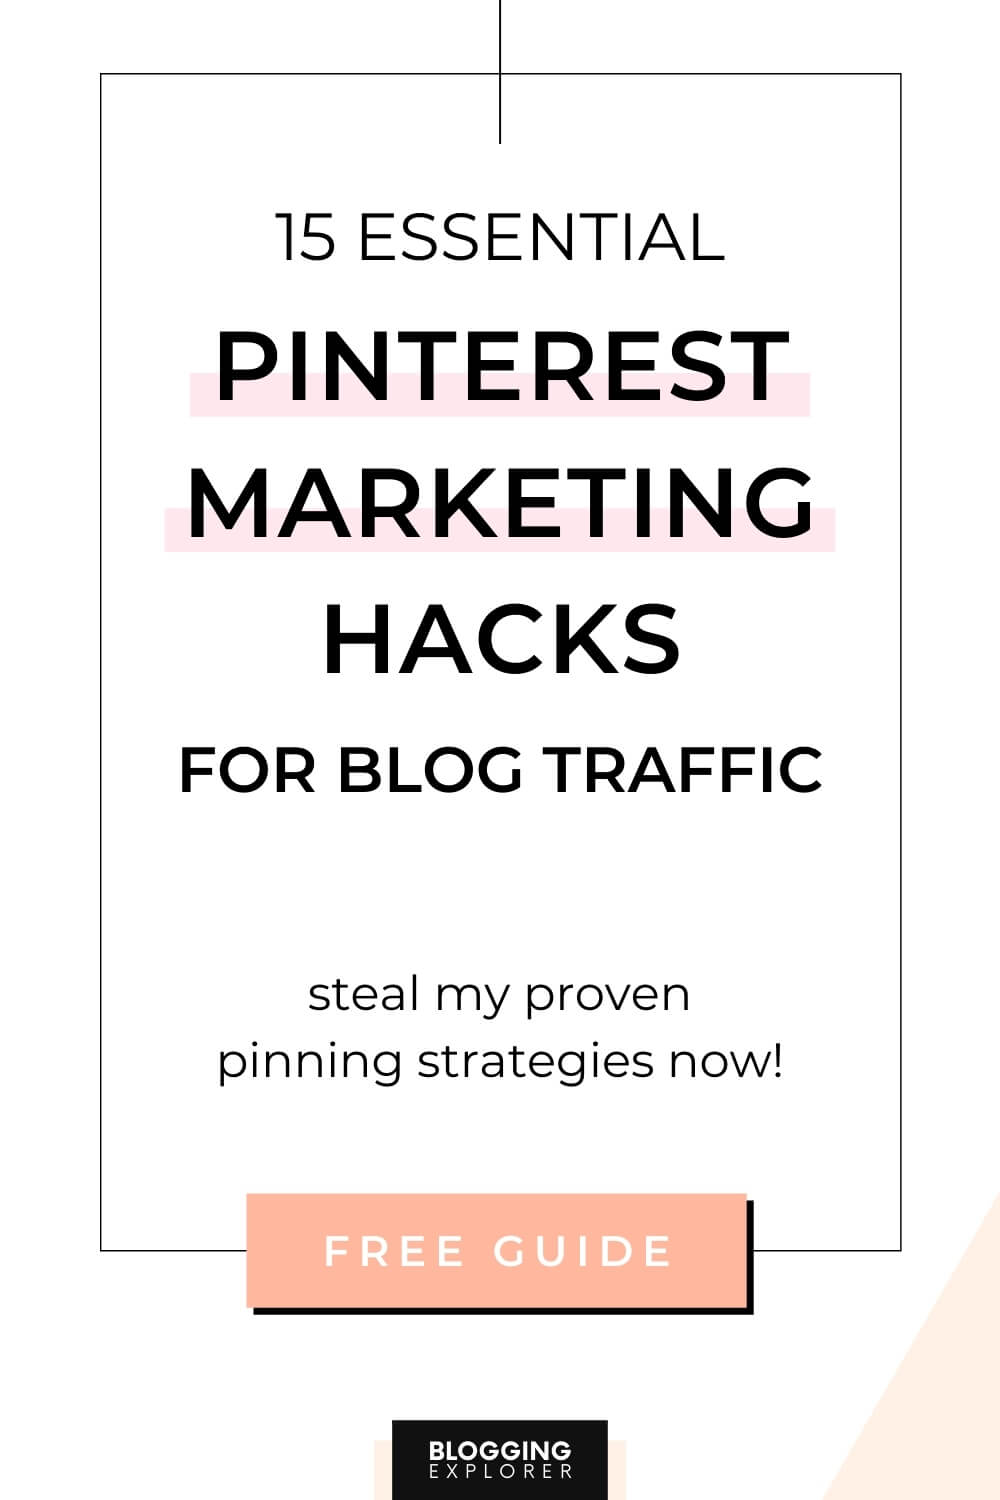 Pinterest marketing strategy guide for beginners - Grow blog traffic easily